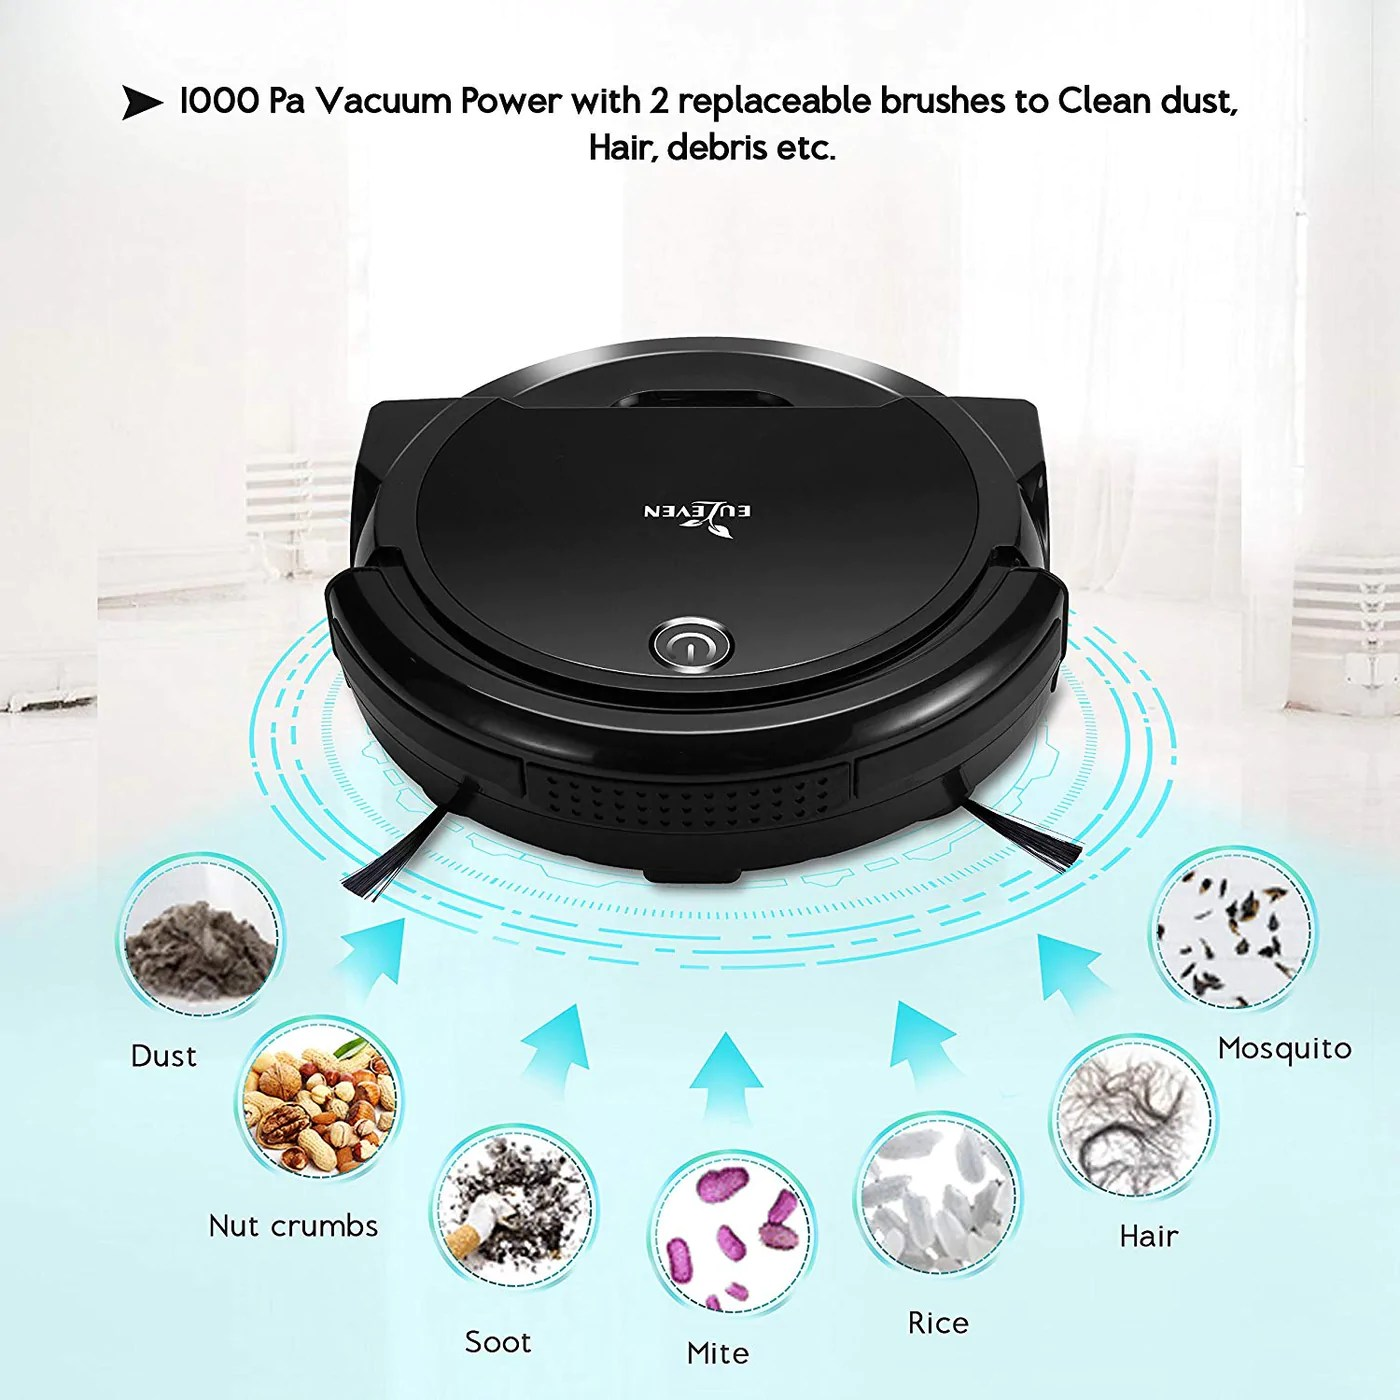 Sofa Vacuum Cleaner Brush Euleven 3 In 1 Floor Robotic Vacuum With Smart Mopping Cleaner For Hardwood Floor Short Carpet Hepa Filter For Pet Hair Allergies Friendly